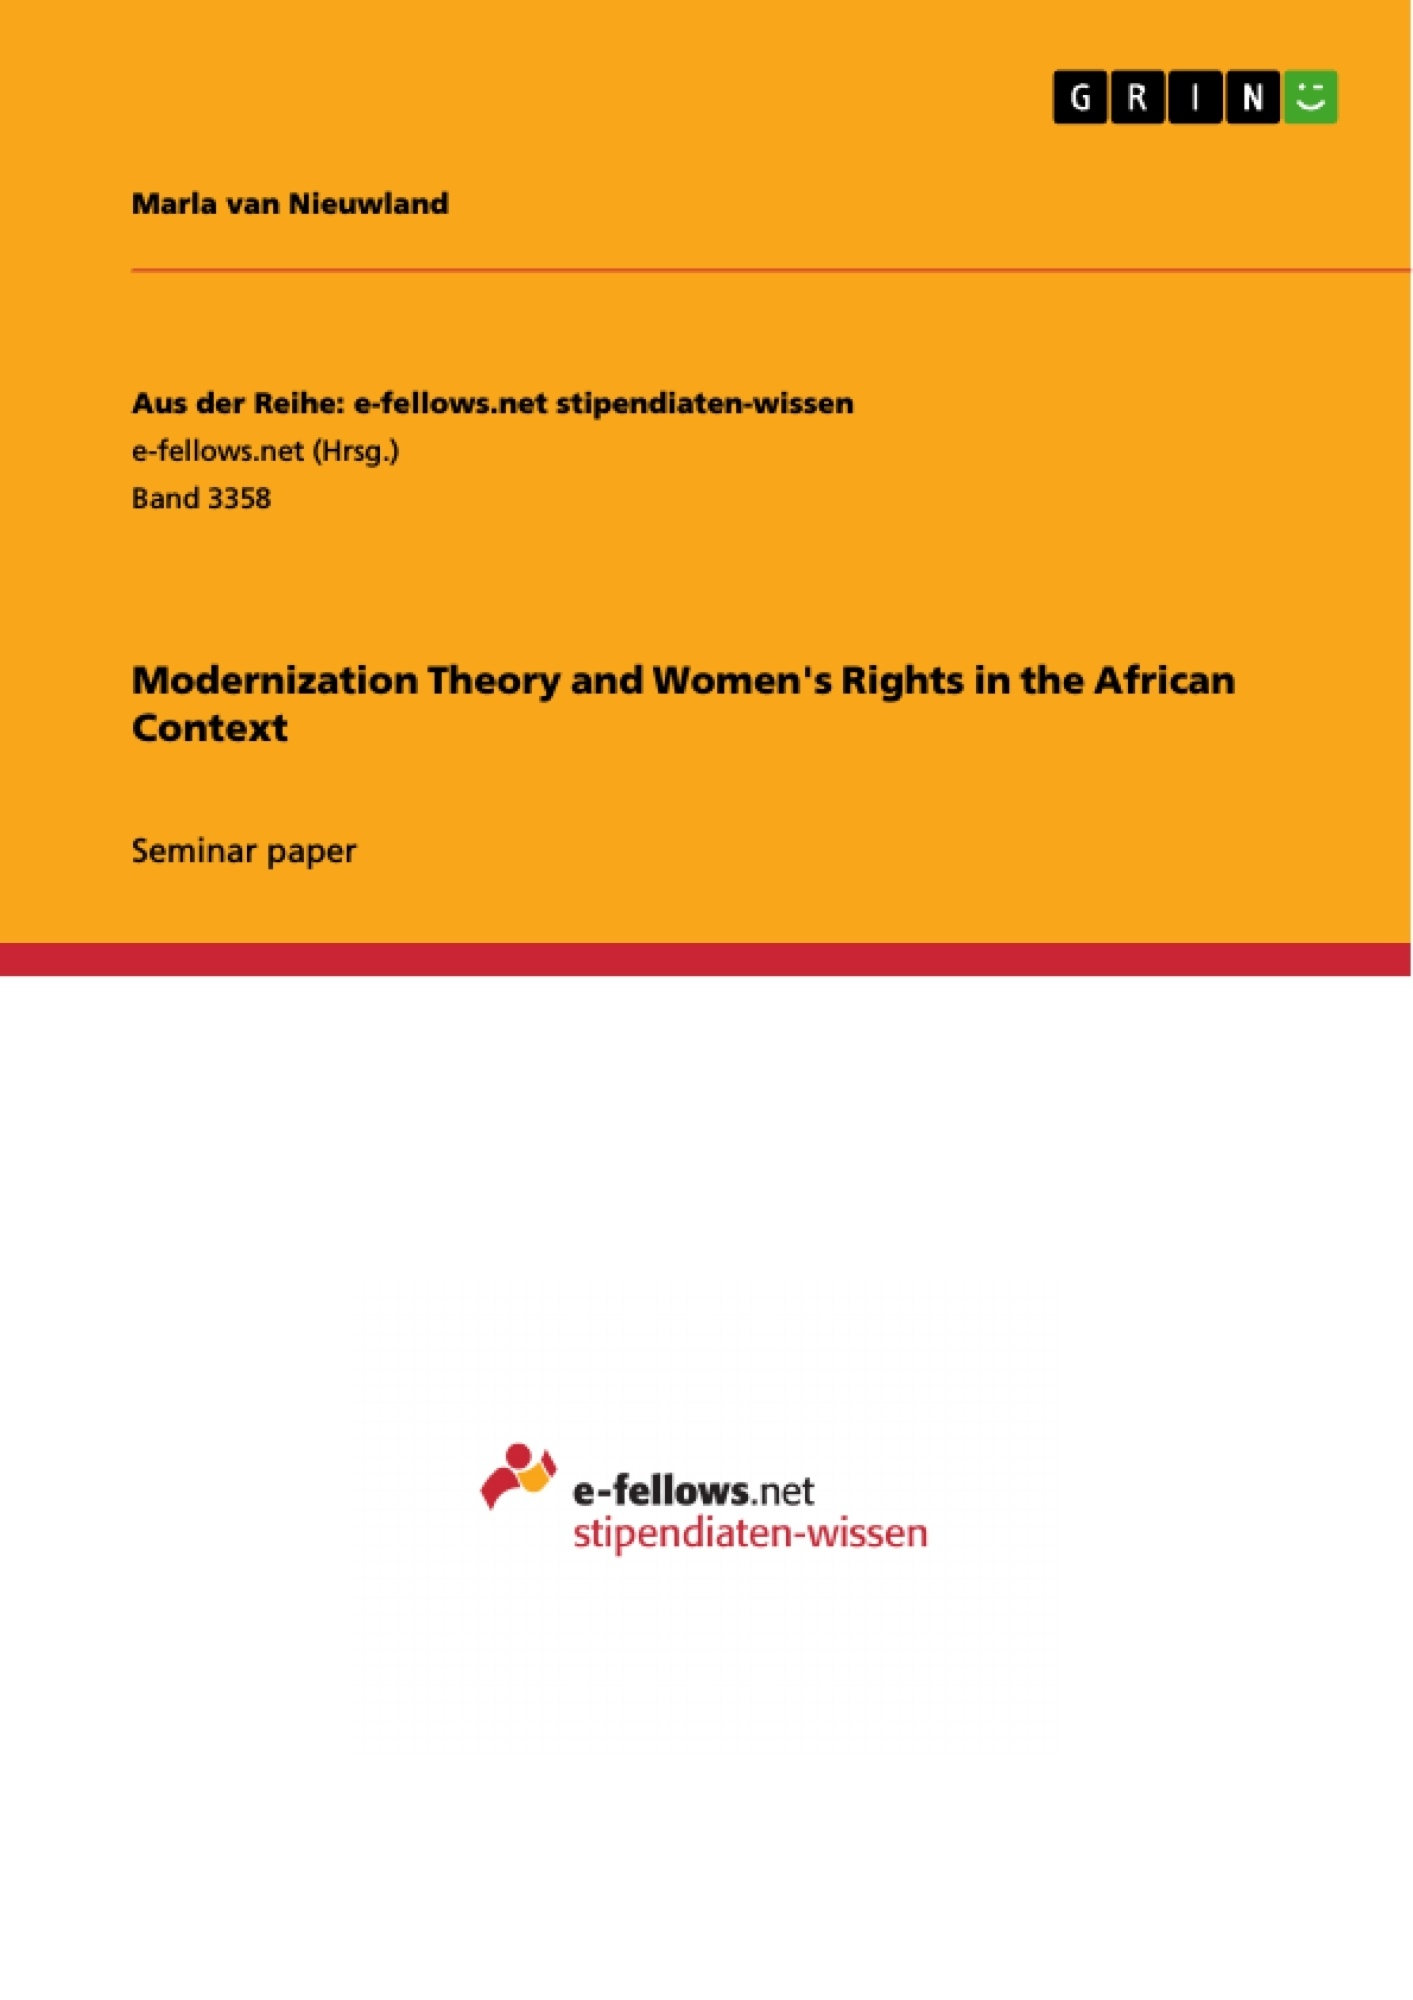 Title: Modernization Theory and Women's Rights in the African Context